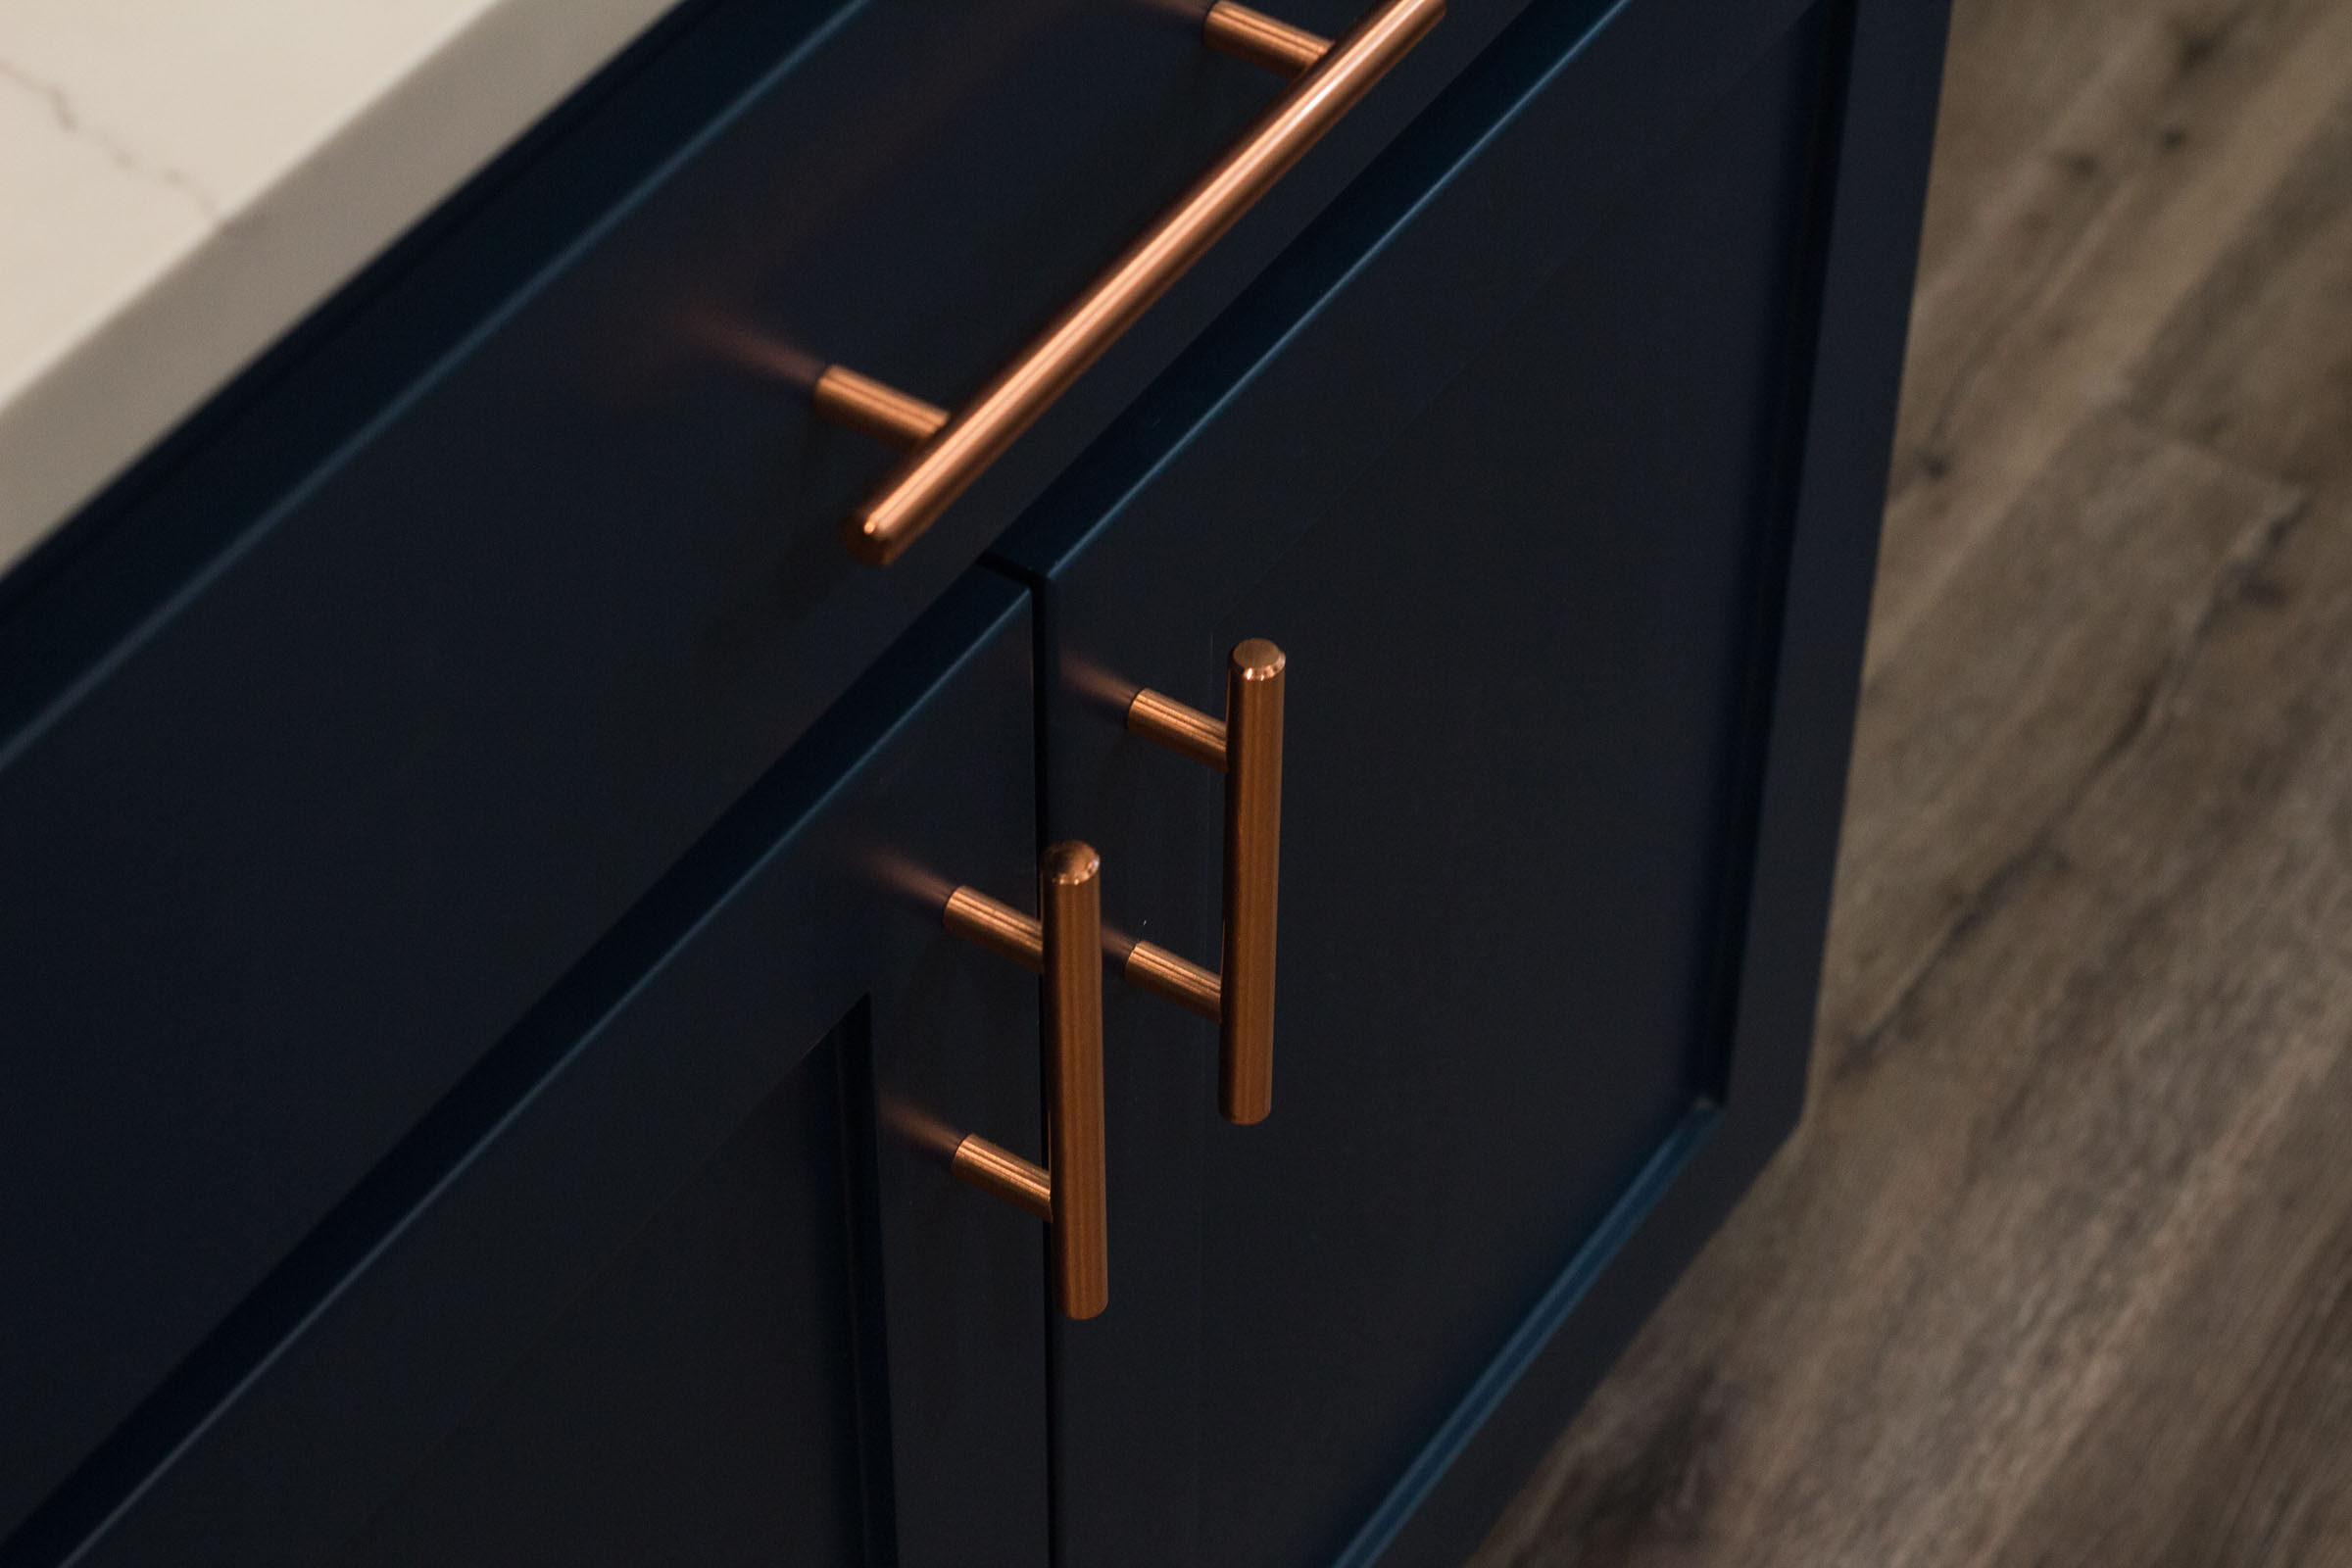 Close up of navy lower cabinets and copper drawer pulls